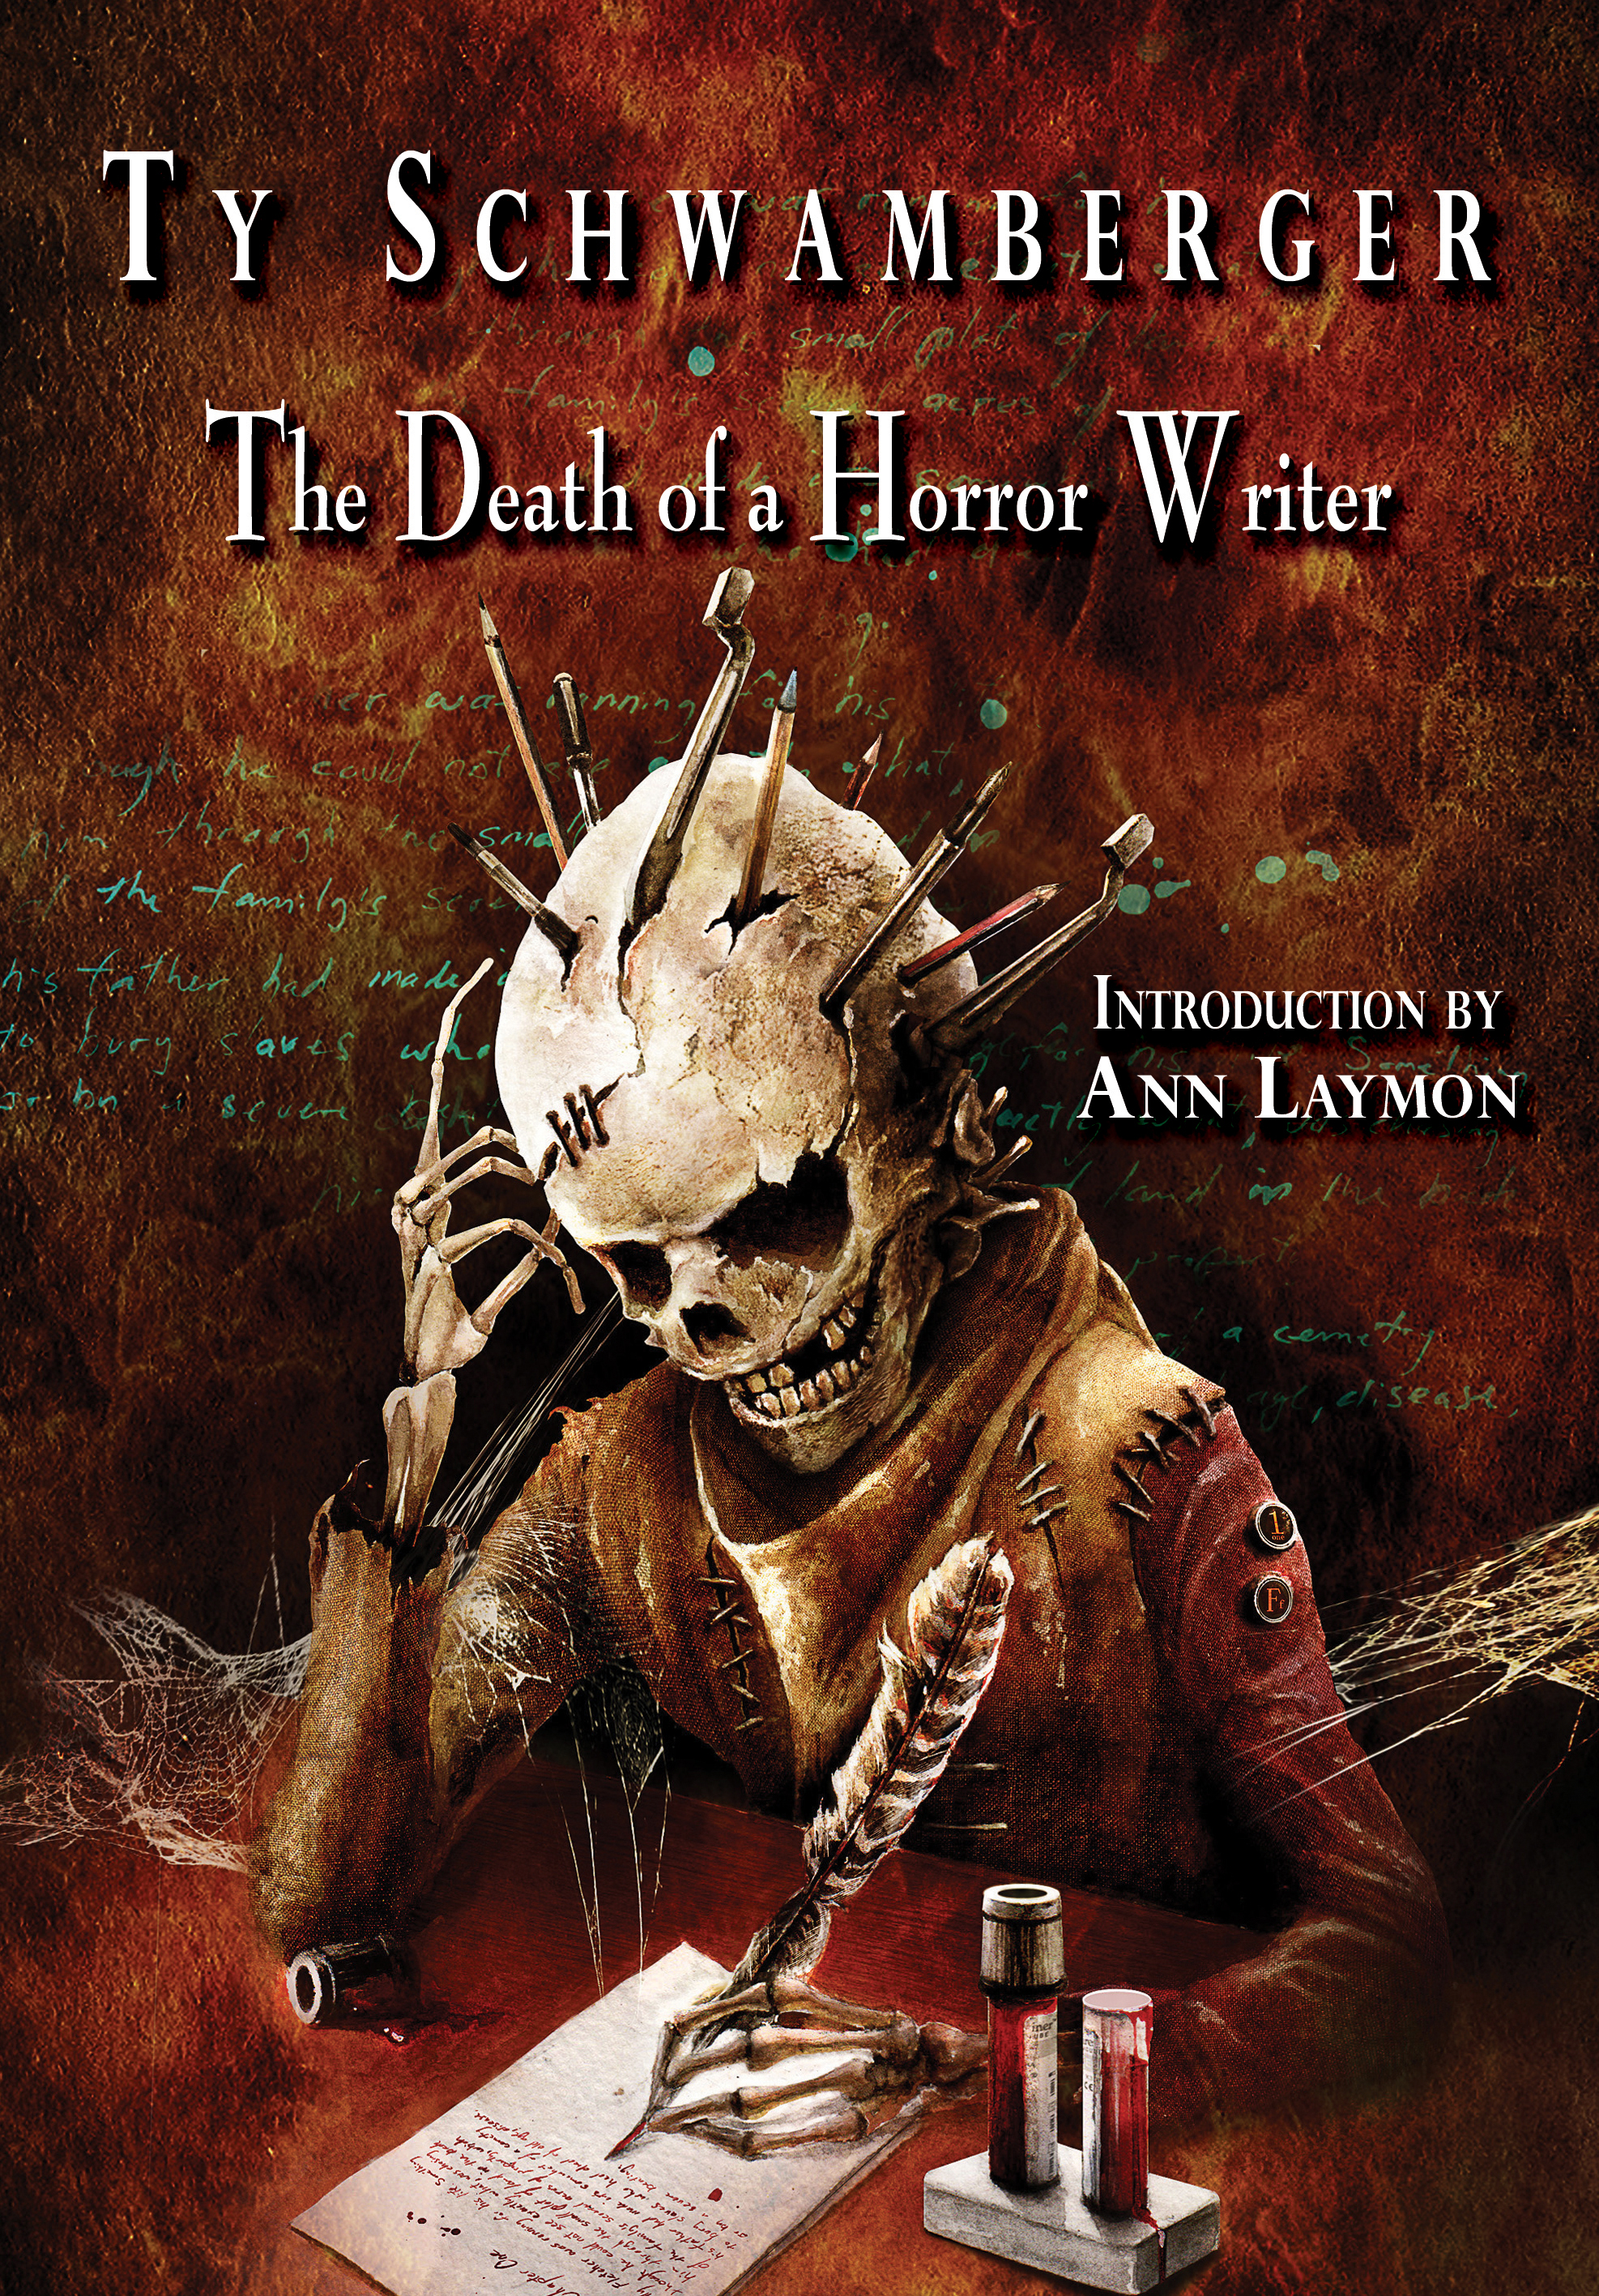 Friday Reads: The Death of a Horror Writer by Ty Schwamberger